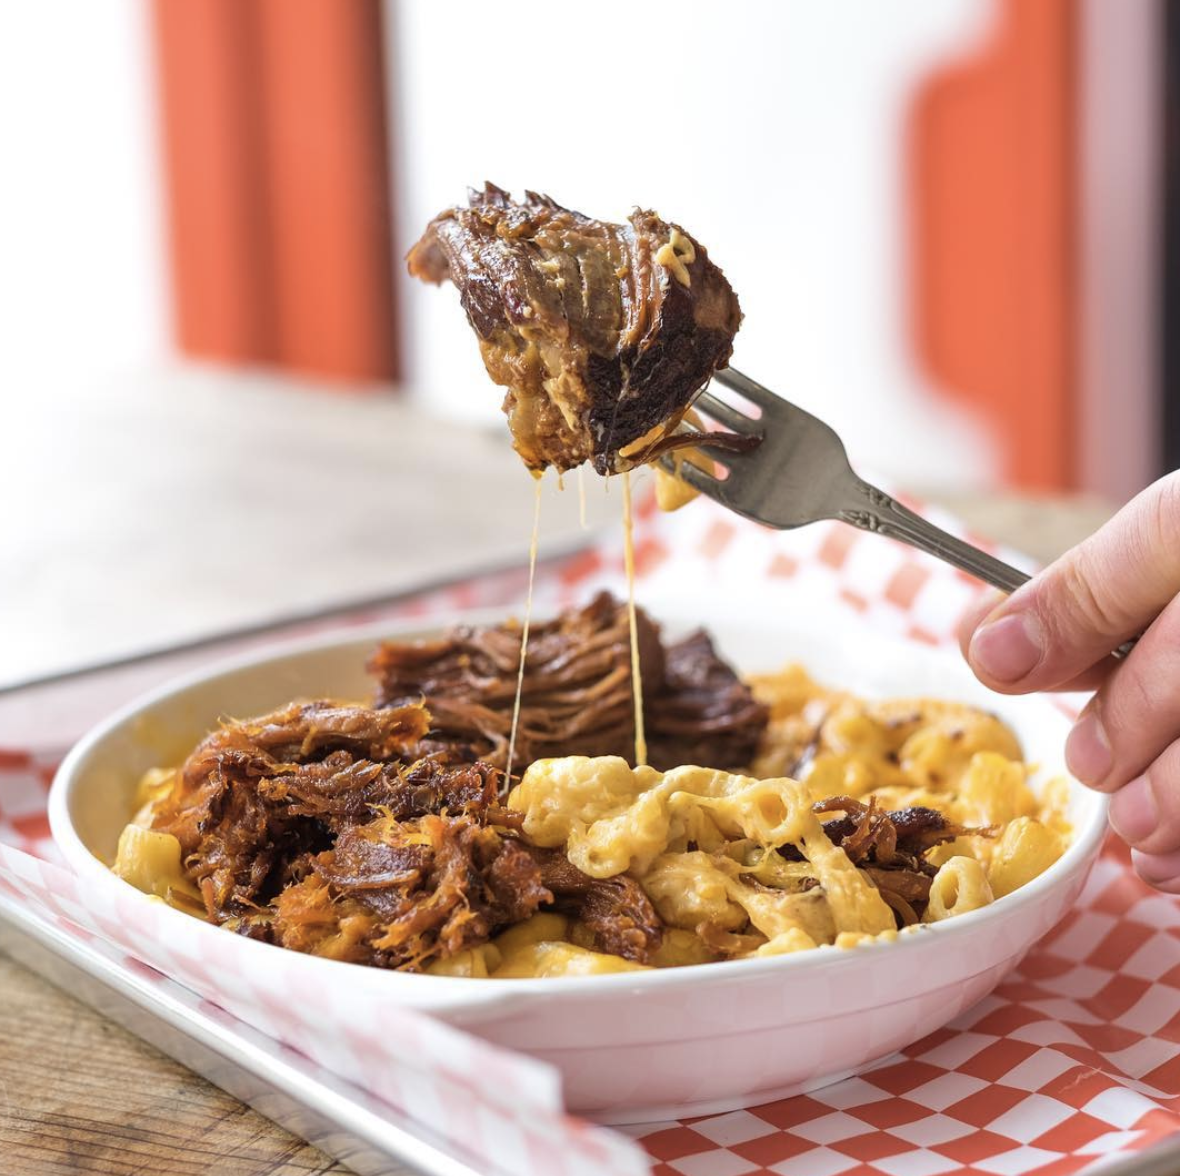 Pictured is a customized macaroni and cheese with short ribs from a San Francisco MAC'D. Courtesy Antony Bello